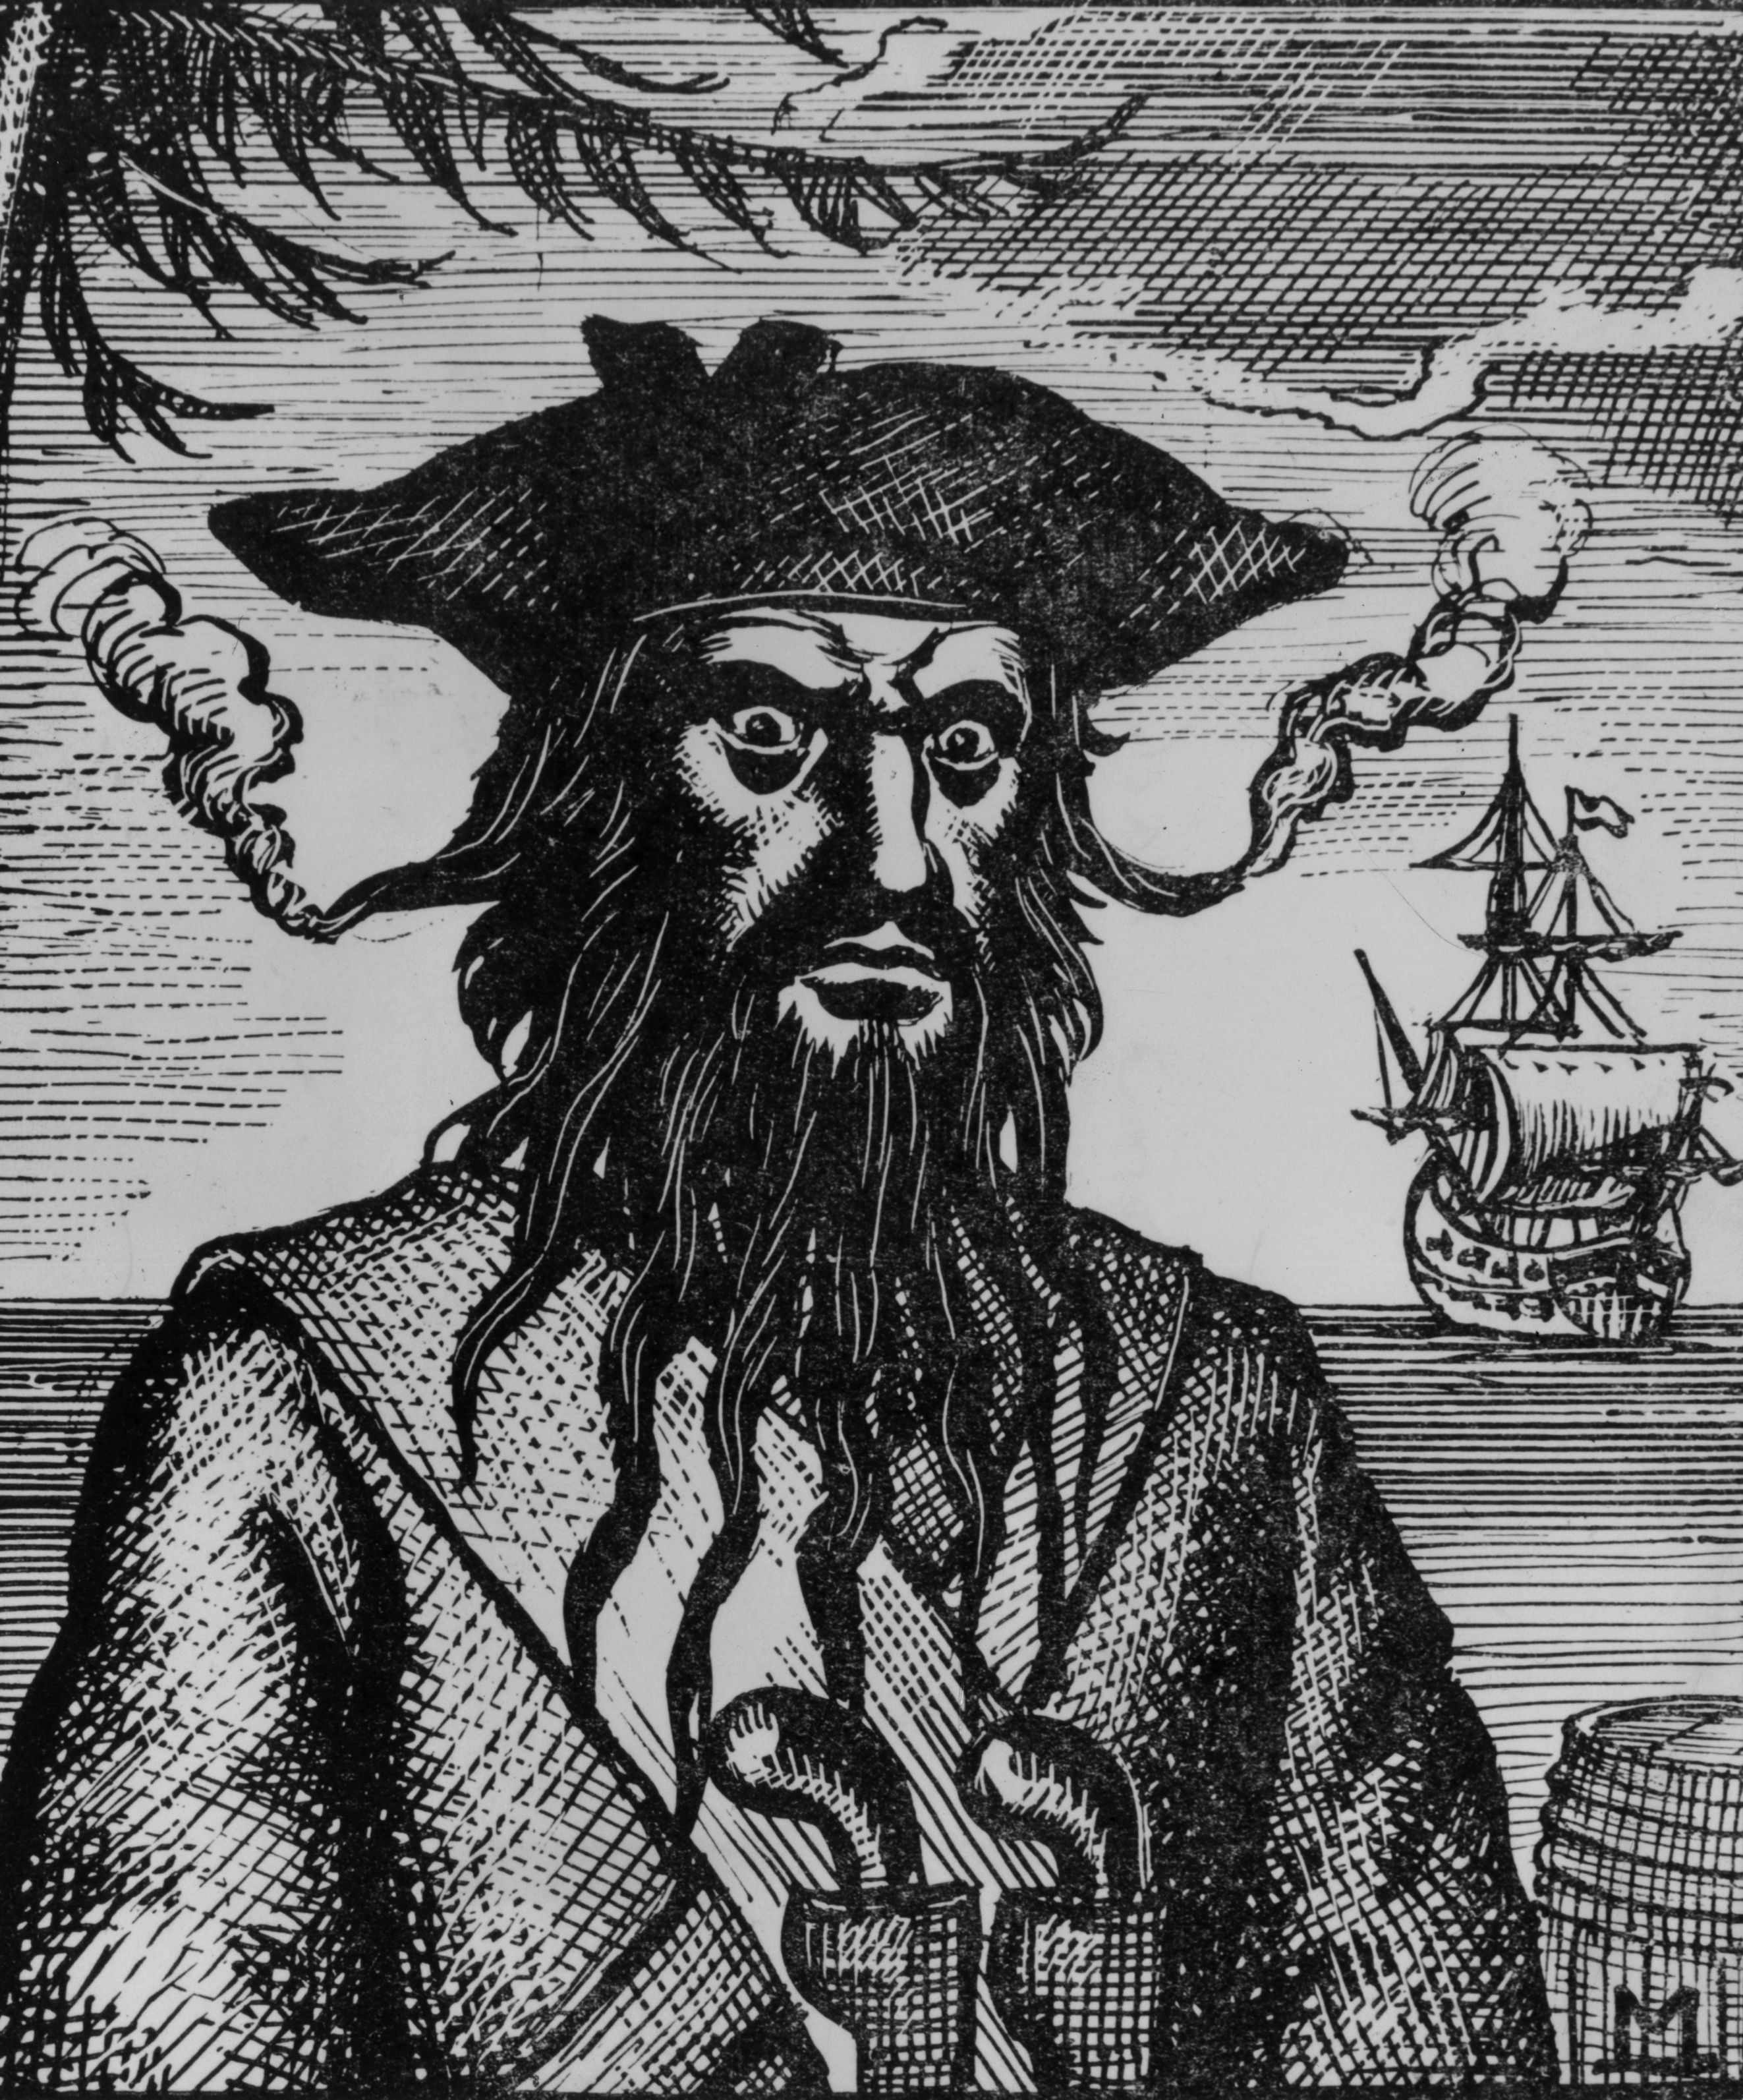 Captain Edward Teach, better known as 'Blackbeard', a pirate who plundered the coasts of the West Indies, North Carolina and Virginia. (Photo by Hulton Archive/Getty Images)